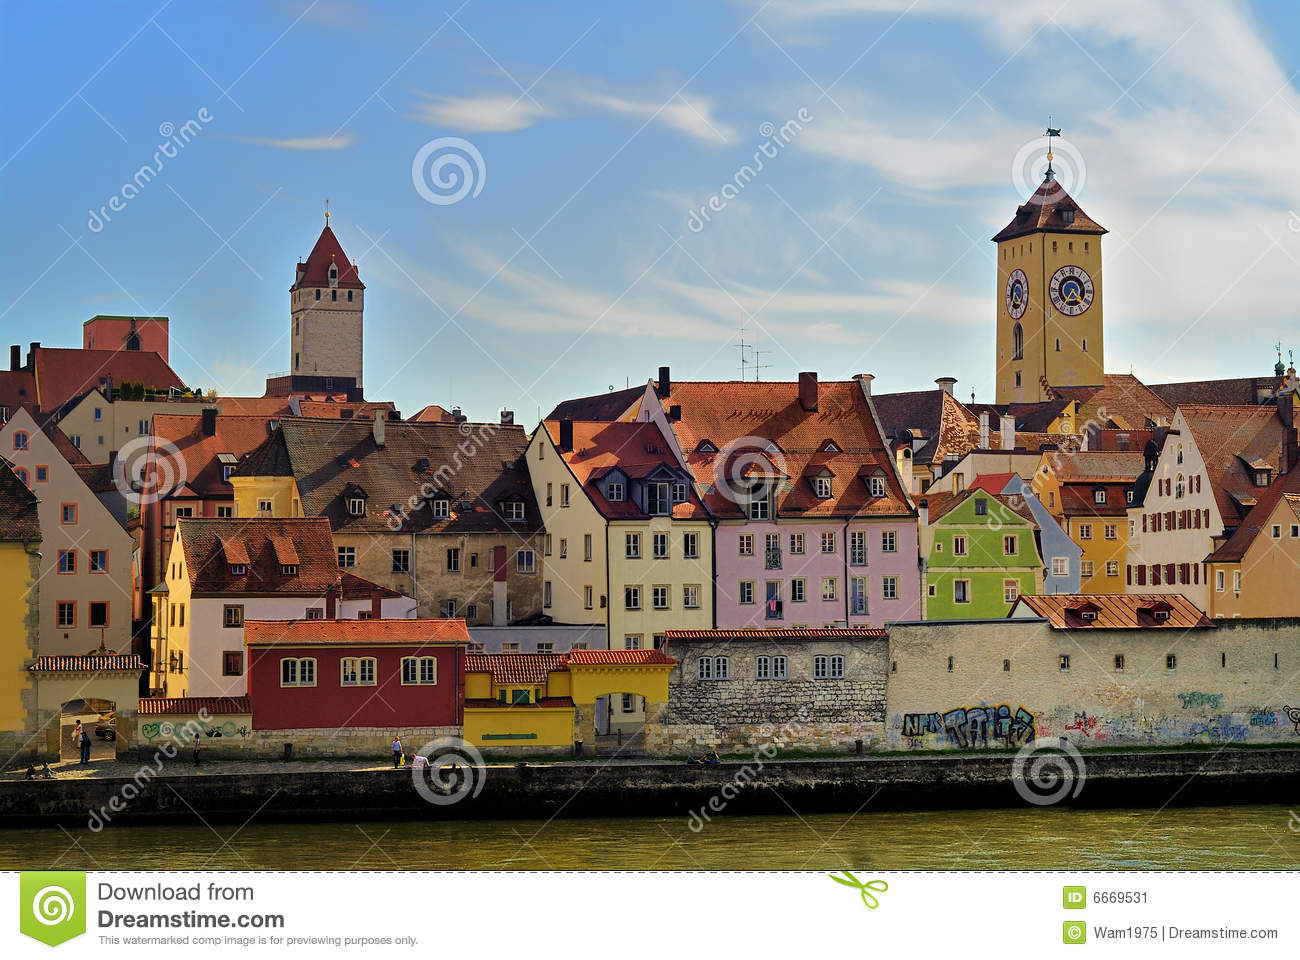 Traditional colorful architecture of buildings in Regensburg, Germany.